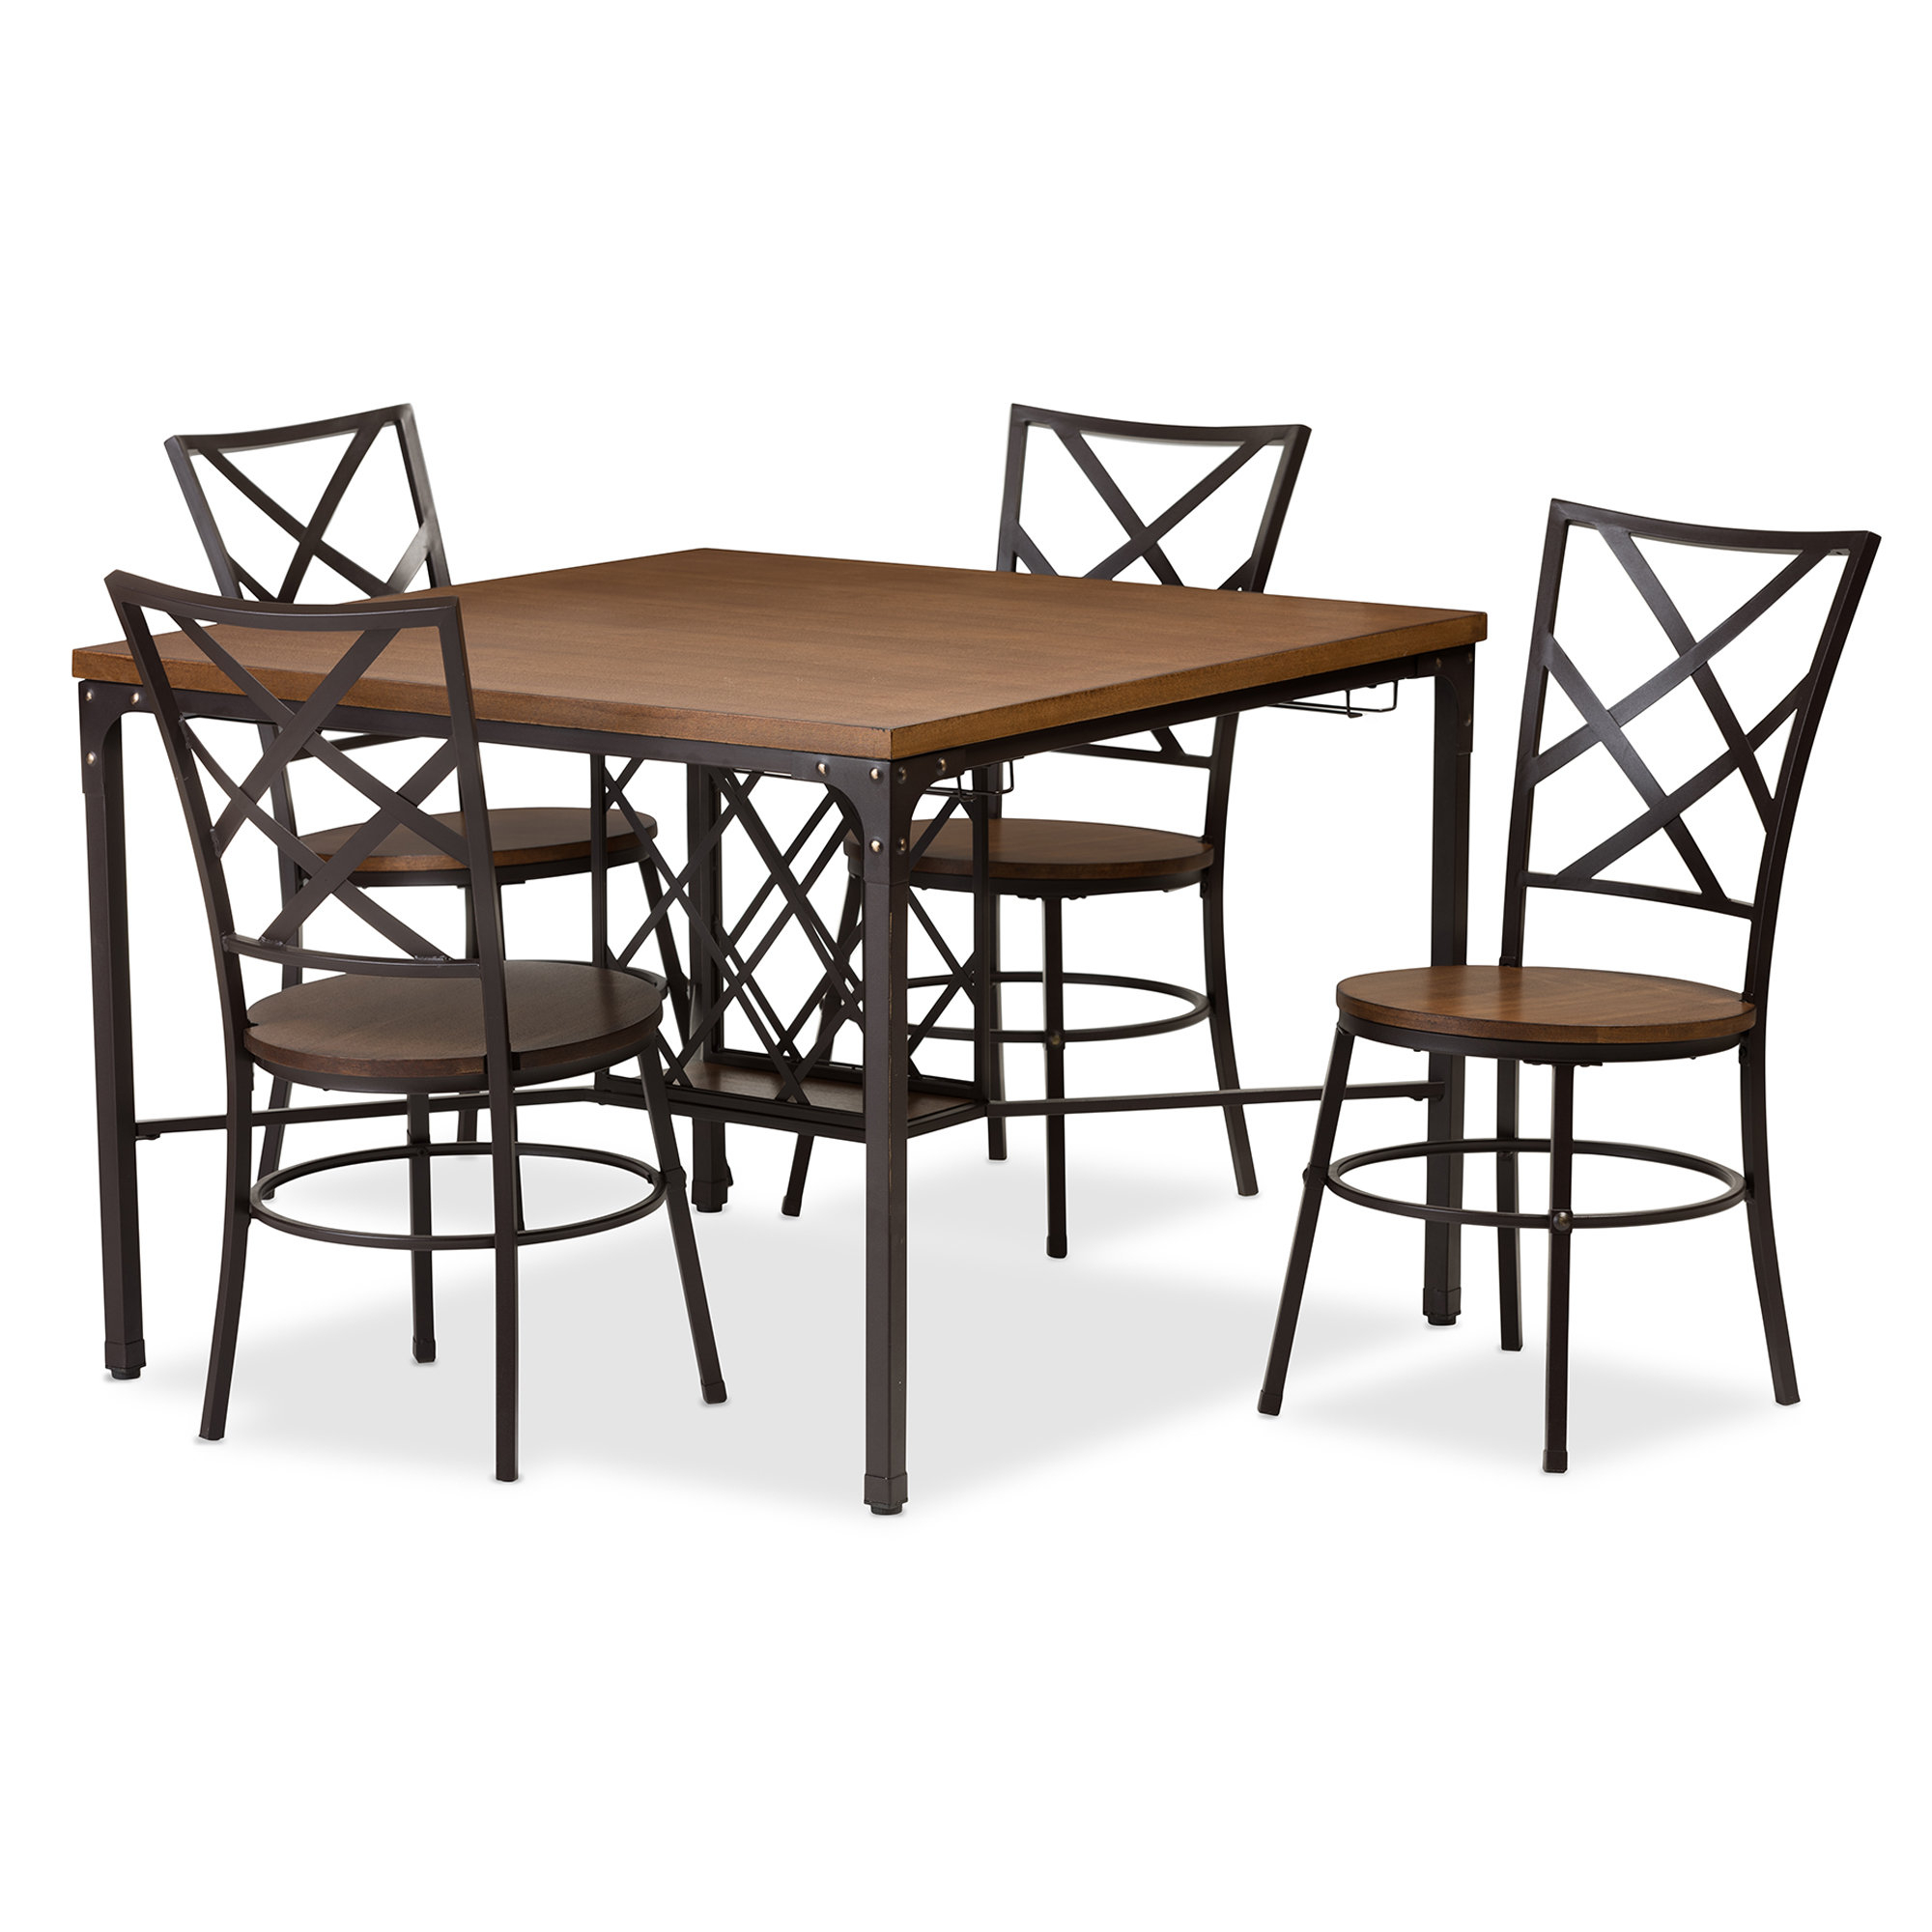 Calla 5 Piece Dining Sets Pertaining To Preferred Calla 5 Piece Dining Set (Gallery 1 of 20)